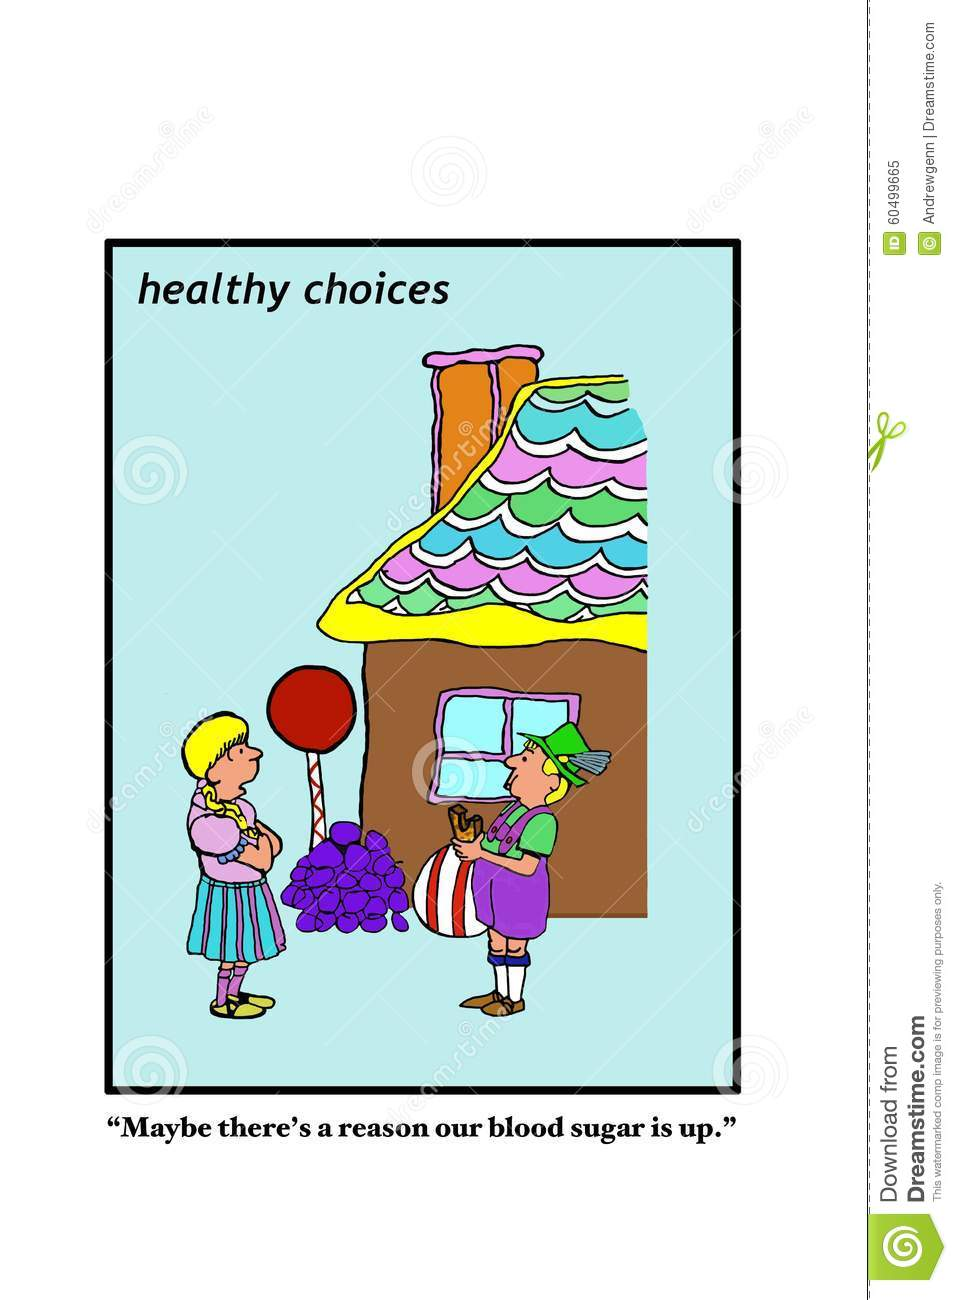 diabetes business medical cartoon healthy choices showing two people gingerbread house maybe there s reason our blood 60499665